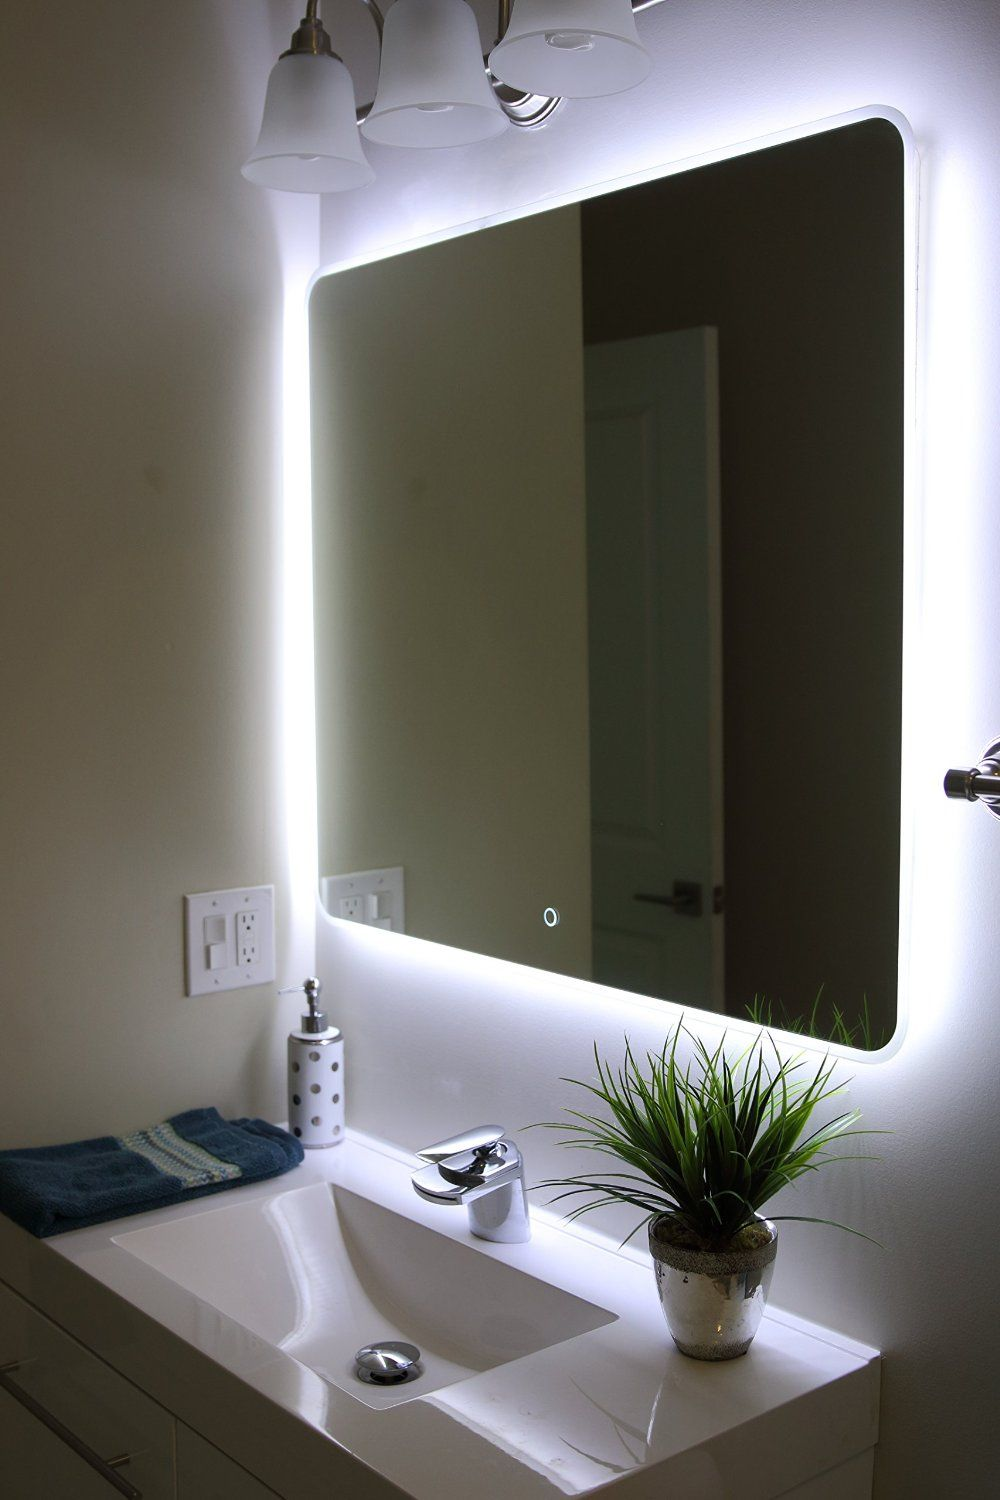 Windbay Backlit Led Light Bathroom Vanity Sink Mirror Illuminated Mirror Http